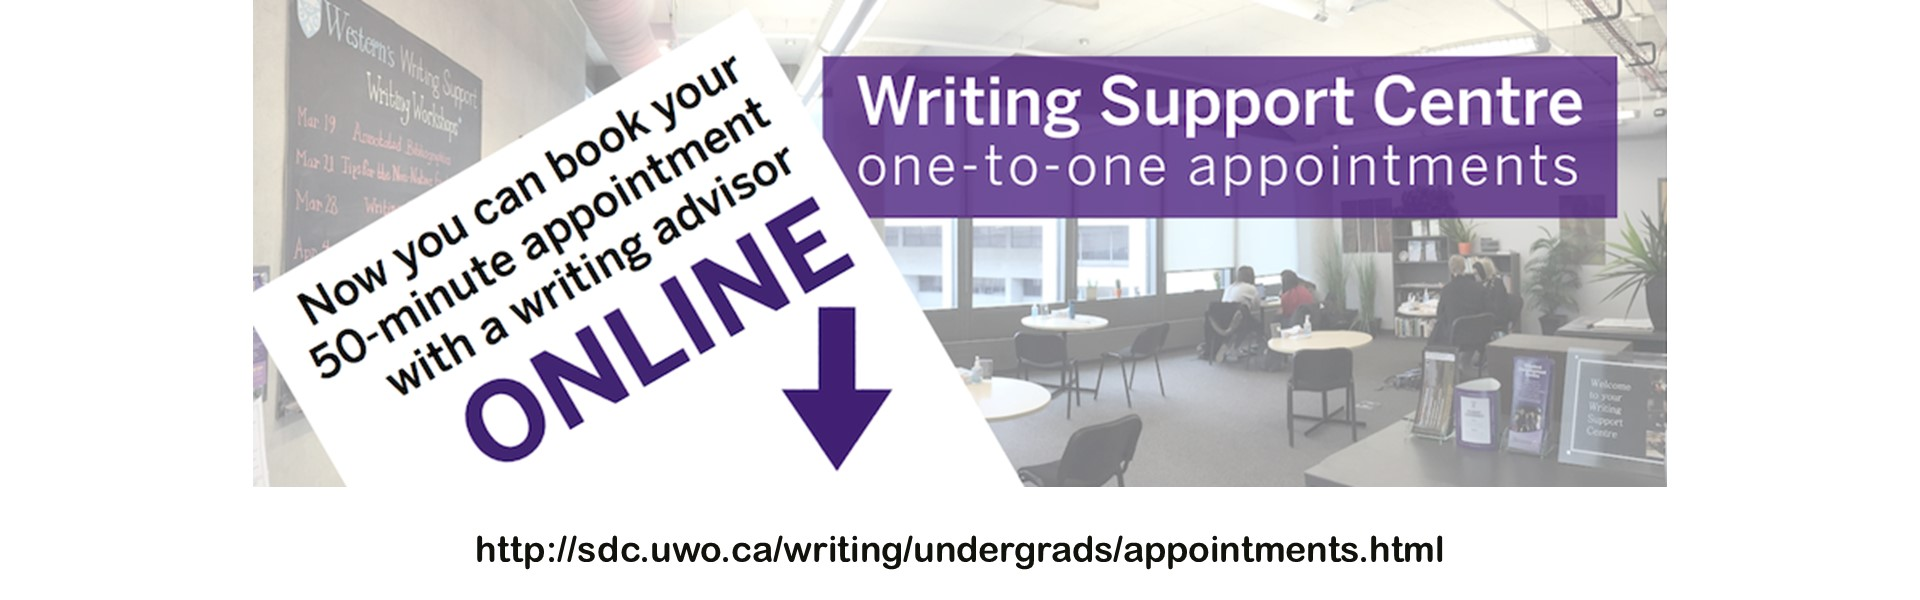 Now you can book your 50-minute appointment with a writing advisor online